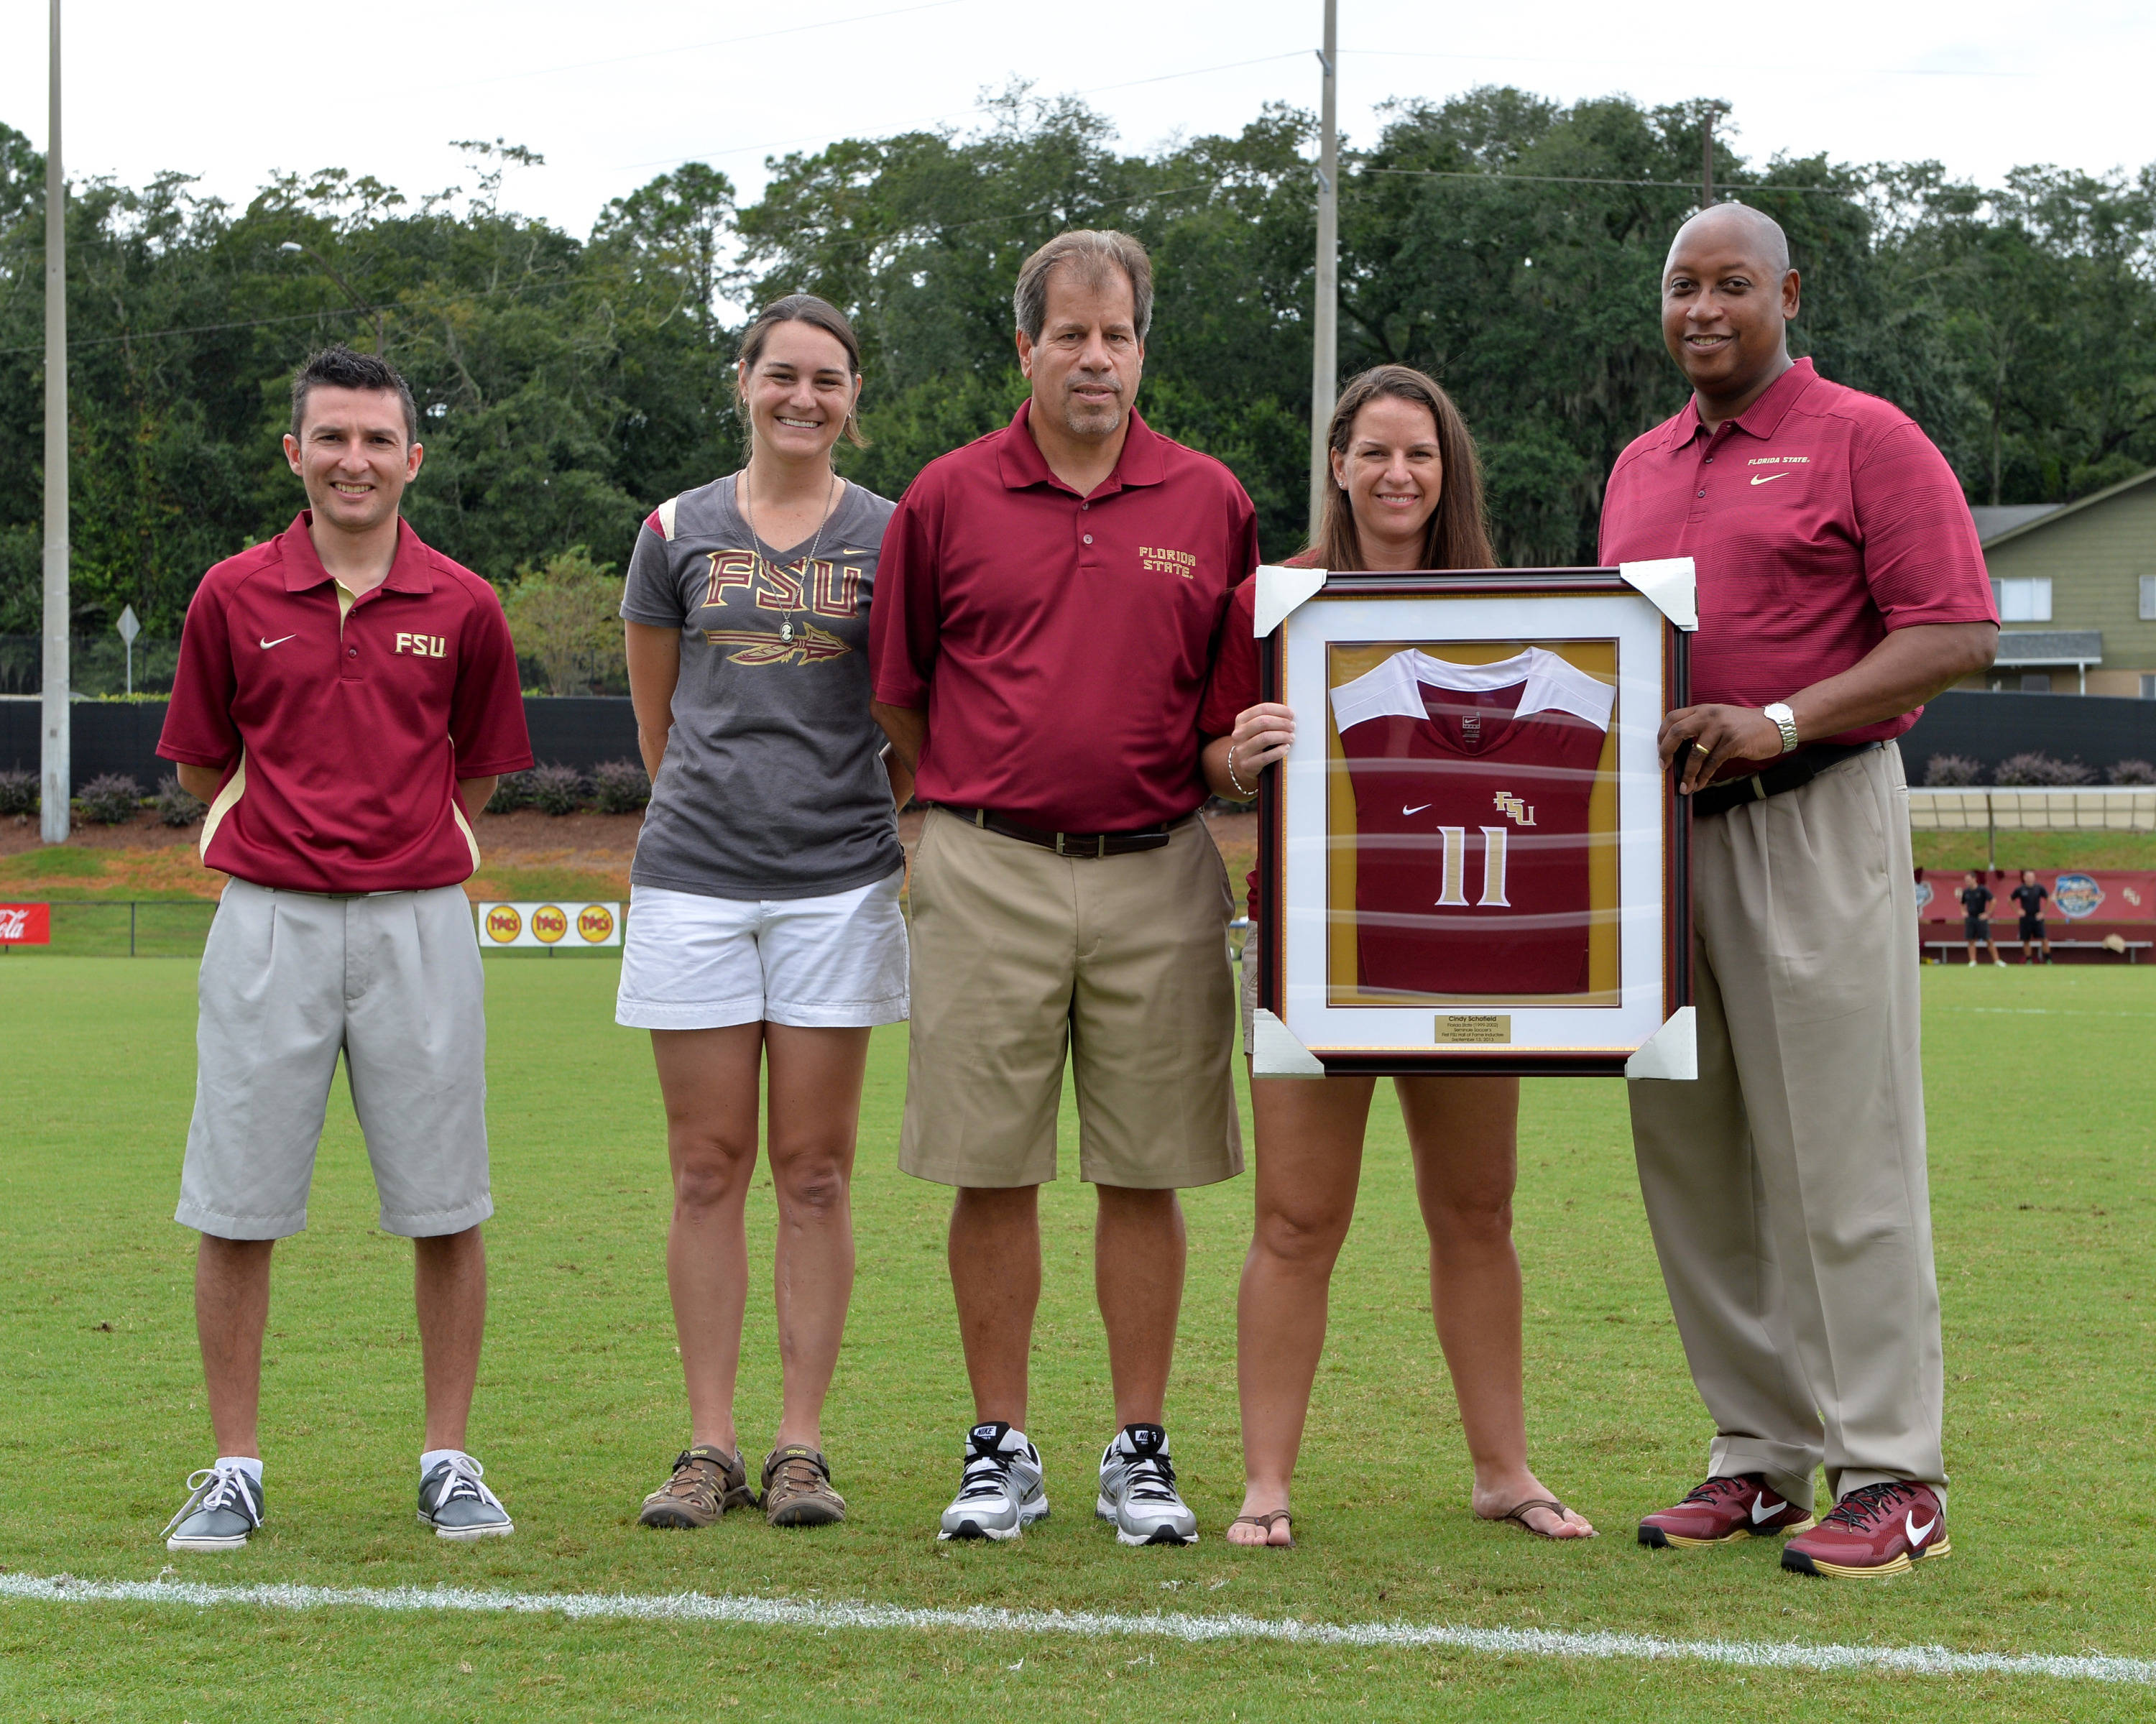 Florida State honored former Seminole great and 2013 FSU Hall of Fame inductee Cindy Schofield on Sunday. Pictured (L to R): Randy Villalba (Cindy's fiancé), Ali Mims, FSU head coach Mark Krikorian, Cindy Schofield and Florida State AD Stan Wilcox.